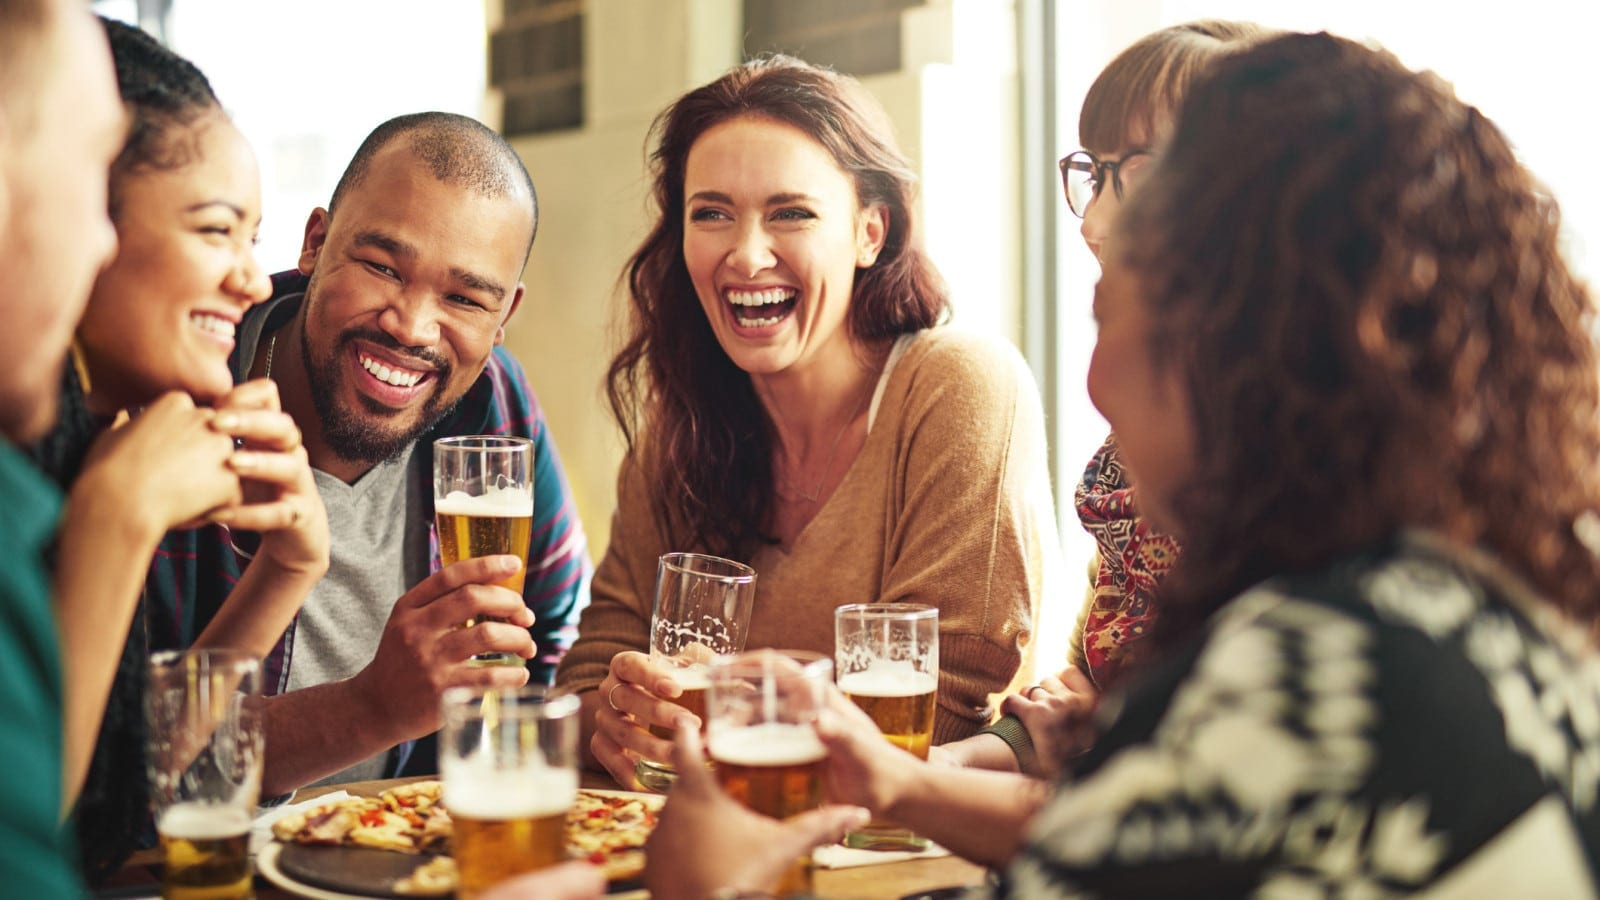 Group Of Friends Eating At A Pub Together Stock Photo